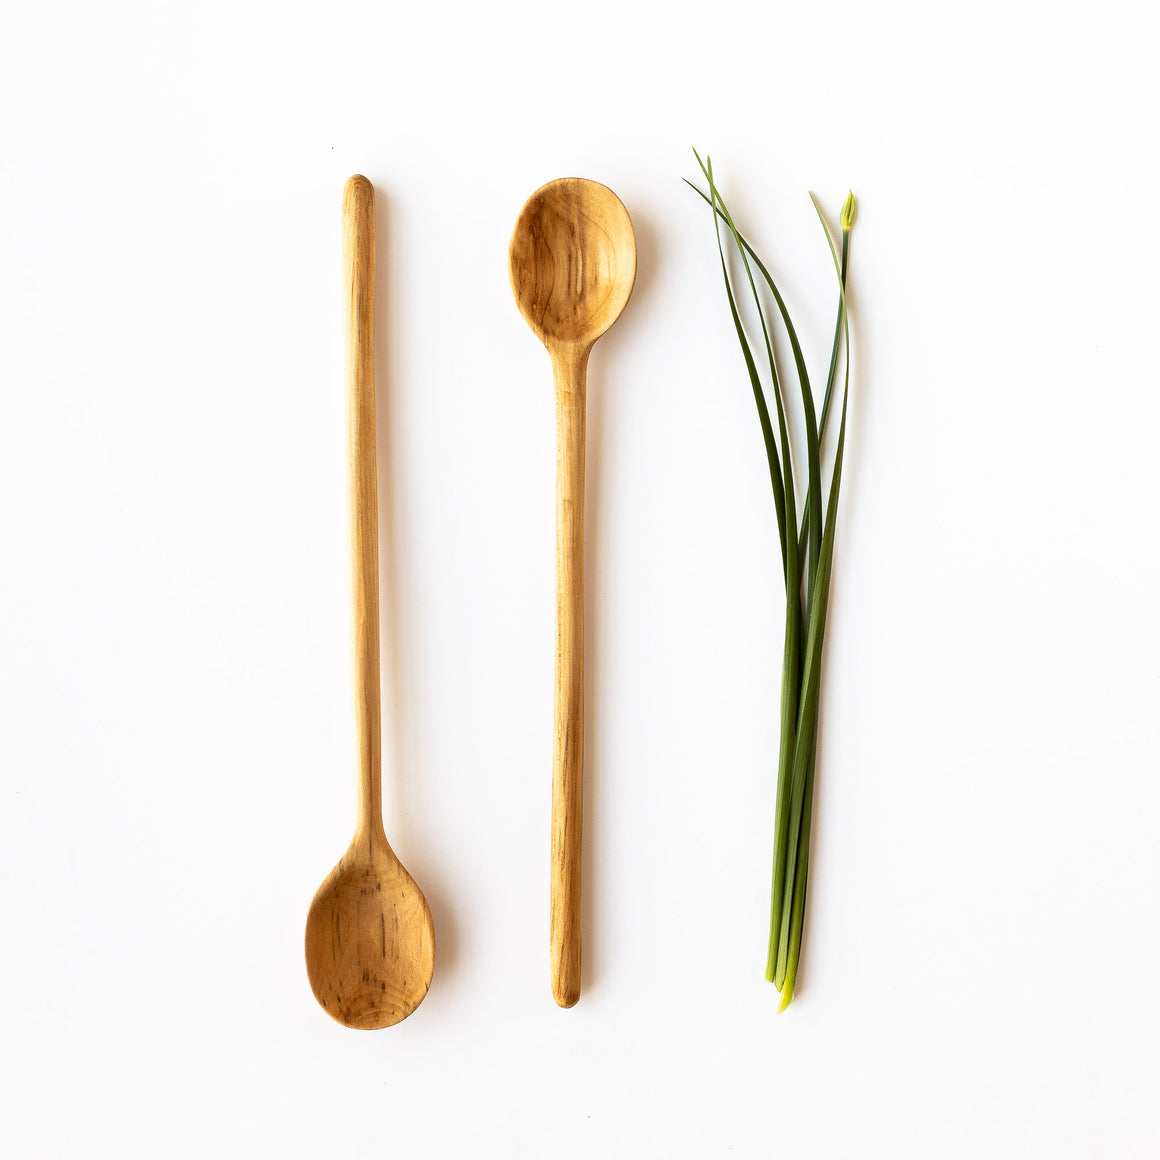 Hand-carved Basswood Cooking Spoon - Sold by Chic & Basta